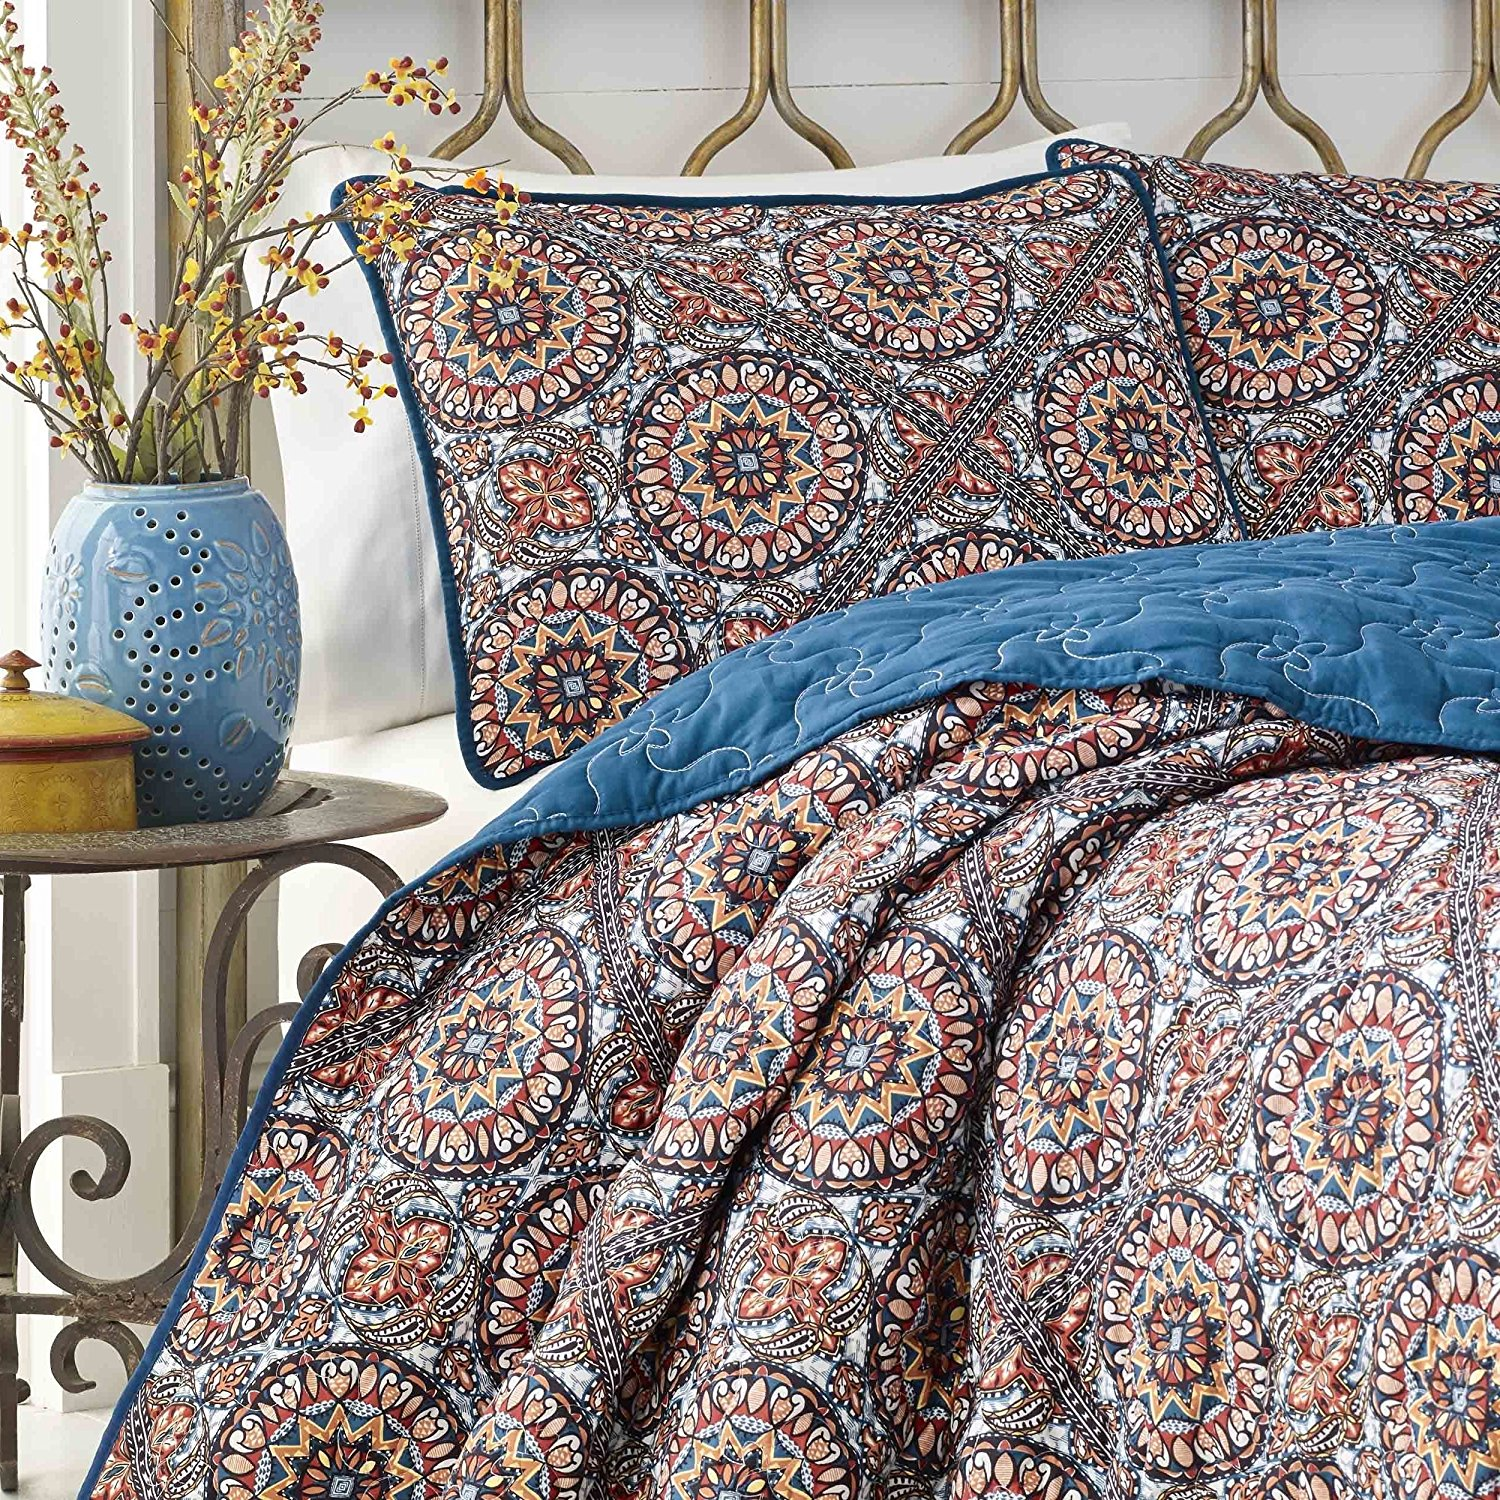 2 Piece Navy Blue Red Tan Bohemian Intricate Theme Quilt Twin Set, Beautiful All Over Boho Chic Floral Bedding, Multi Geometric Line Flower Scroll Themed Pattern, Microfiber